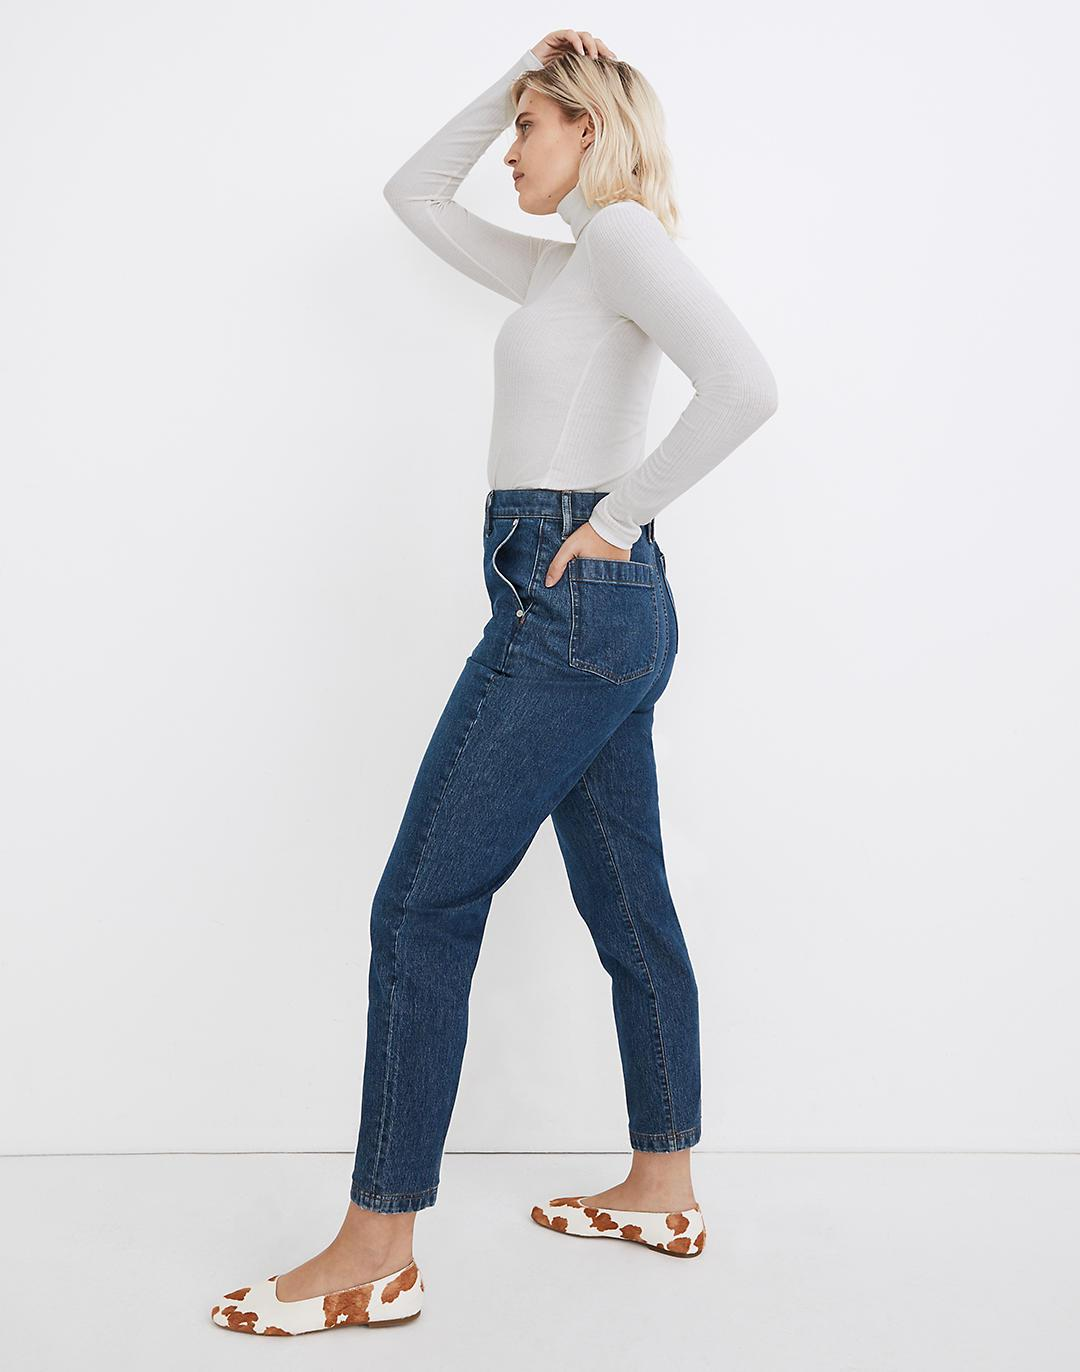 The Perfect Vintage Jean in Minot Wash: Trouser Edition 1